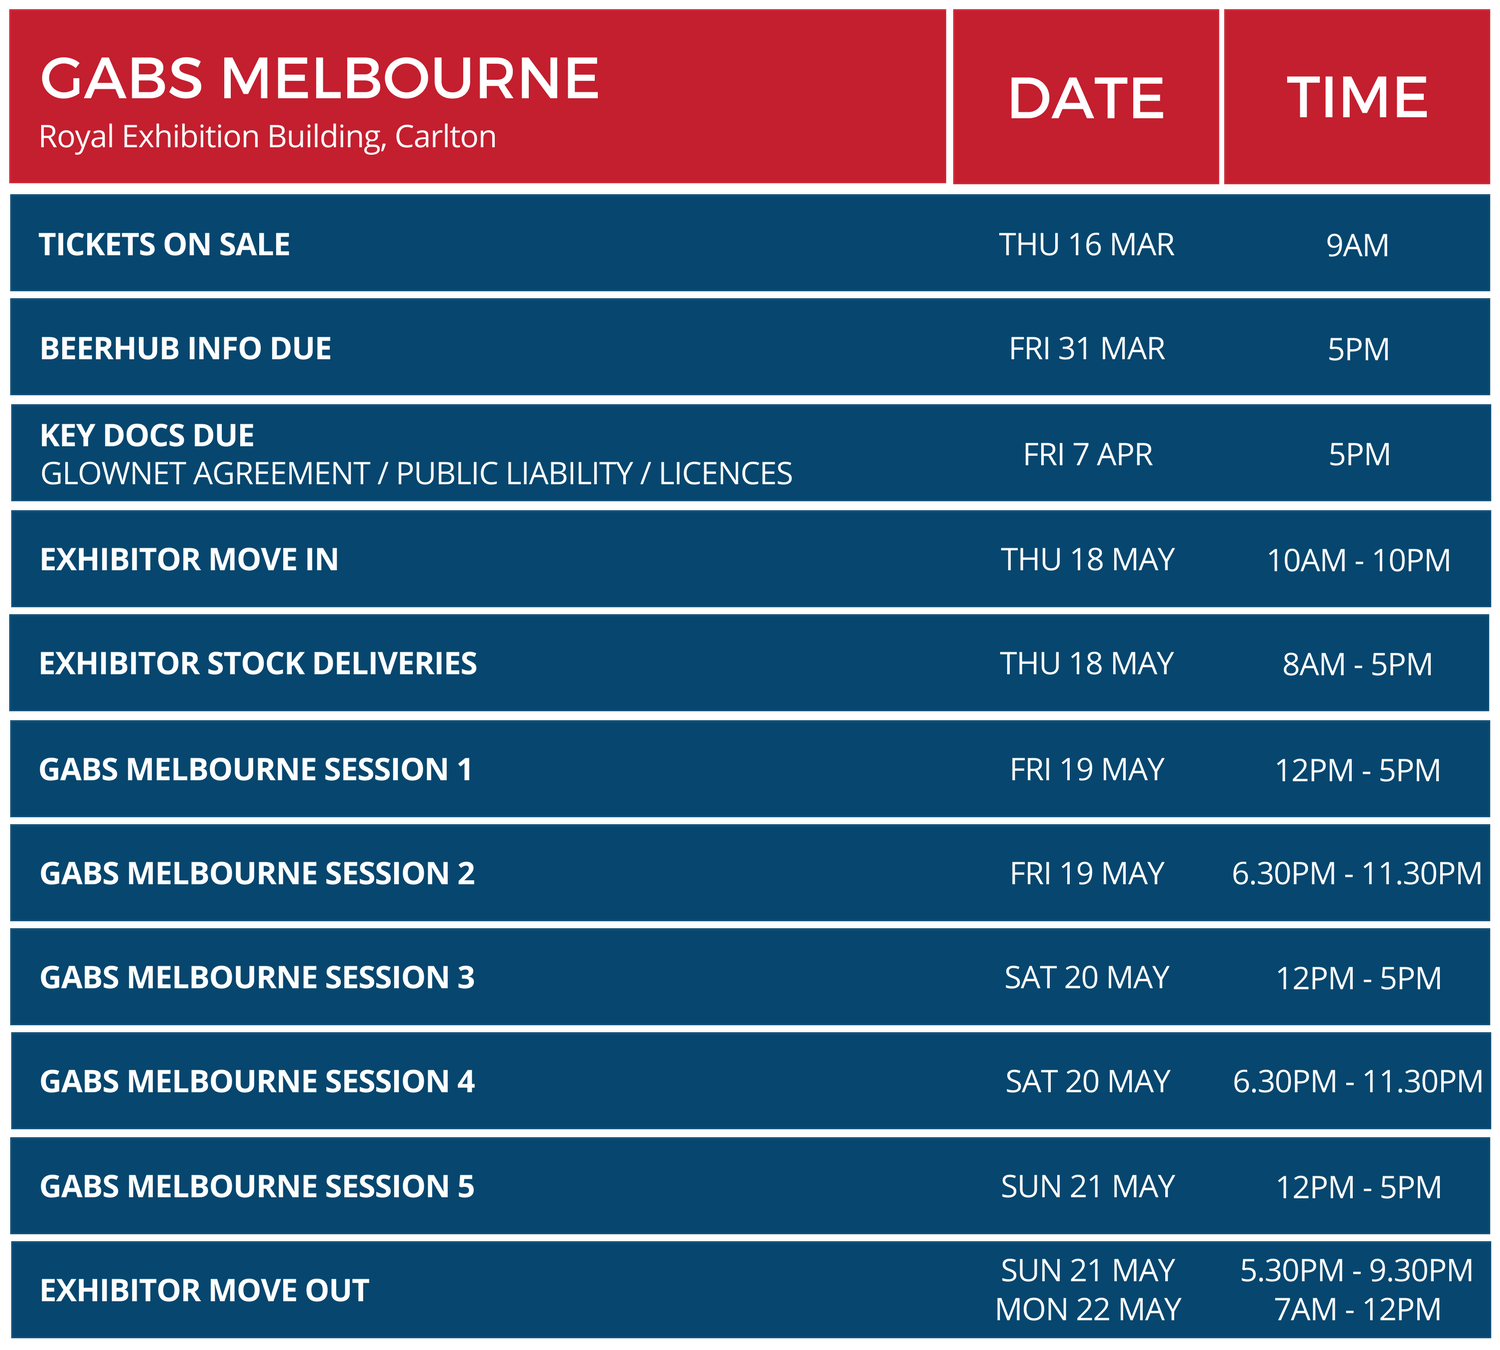 EXHIBITOR EVENT TIMINGS (GABS MELBOURNE).png